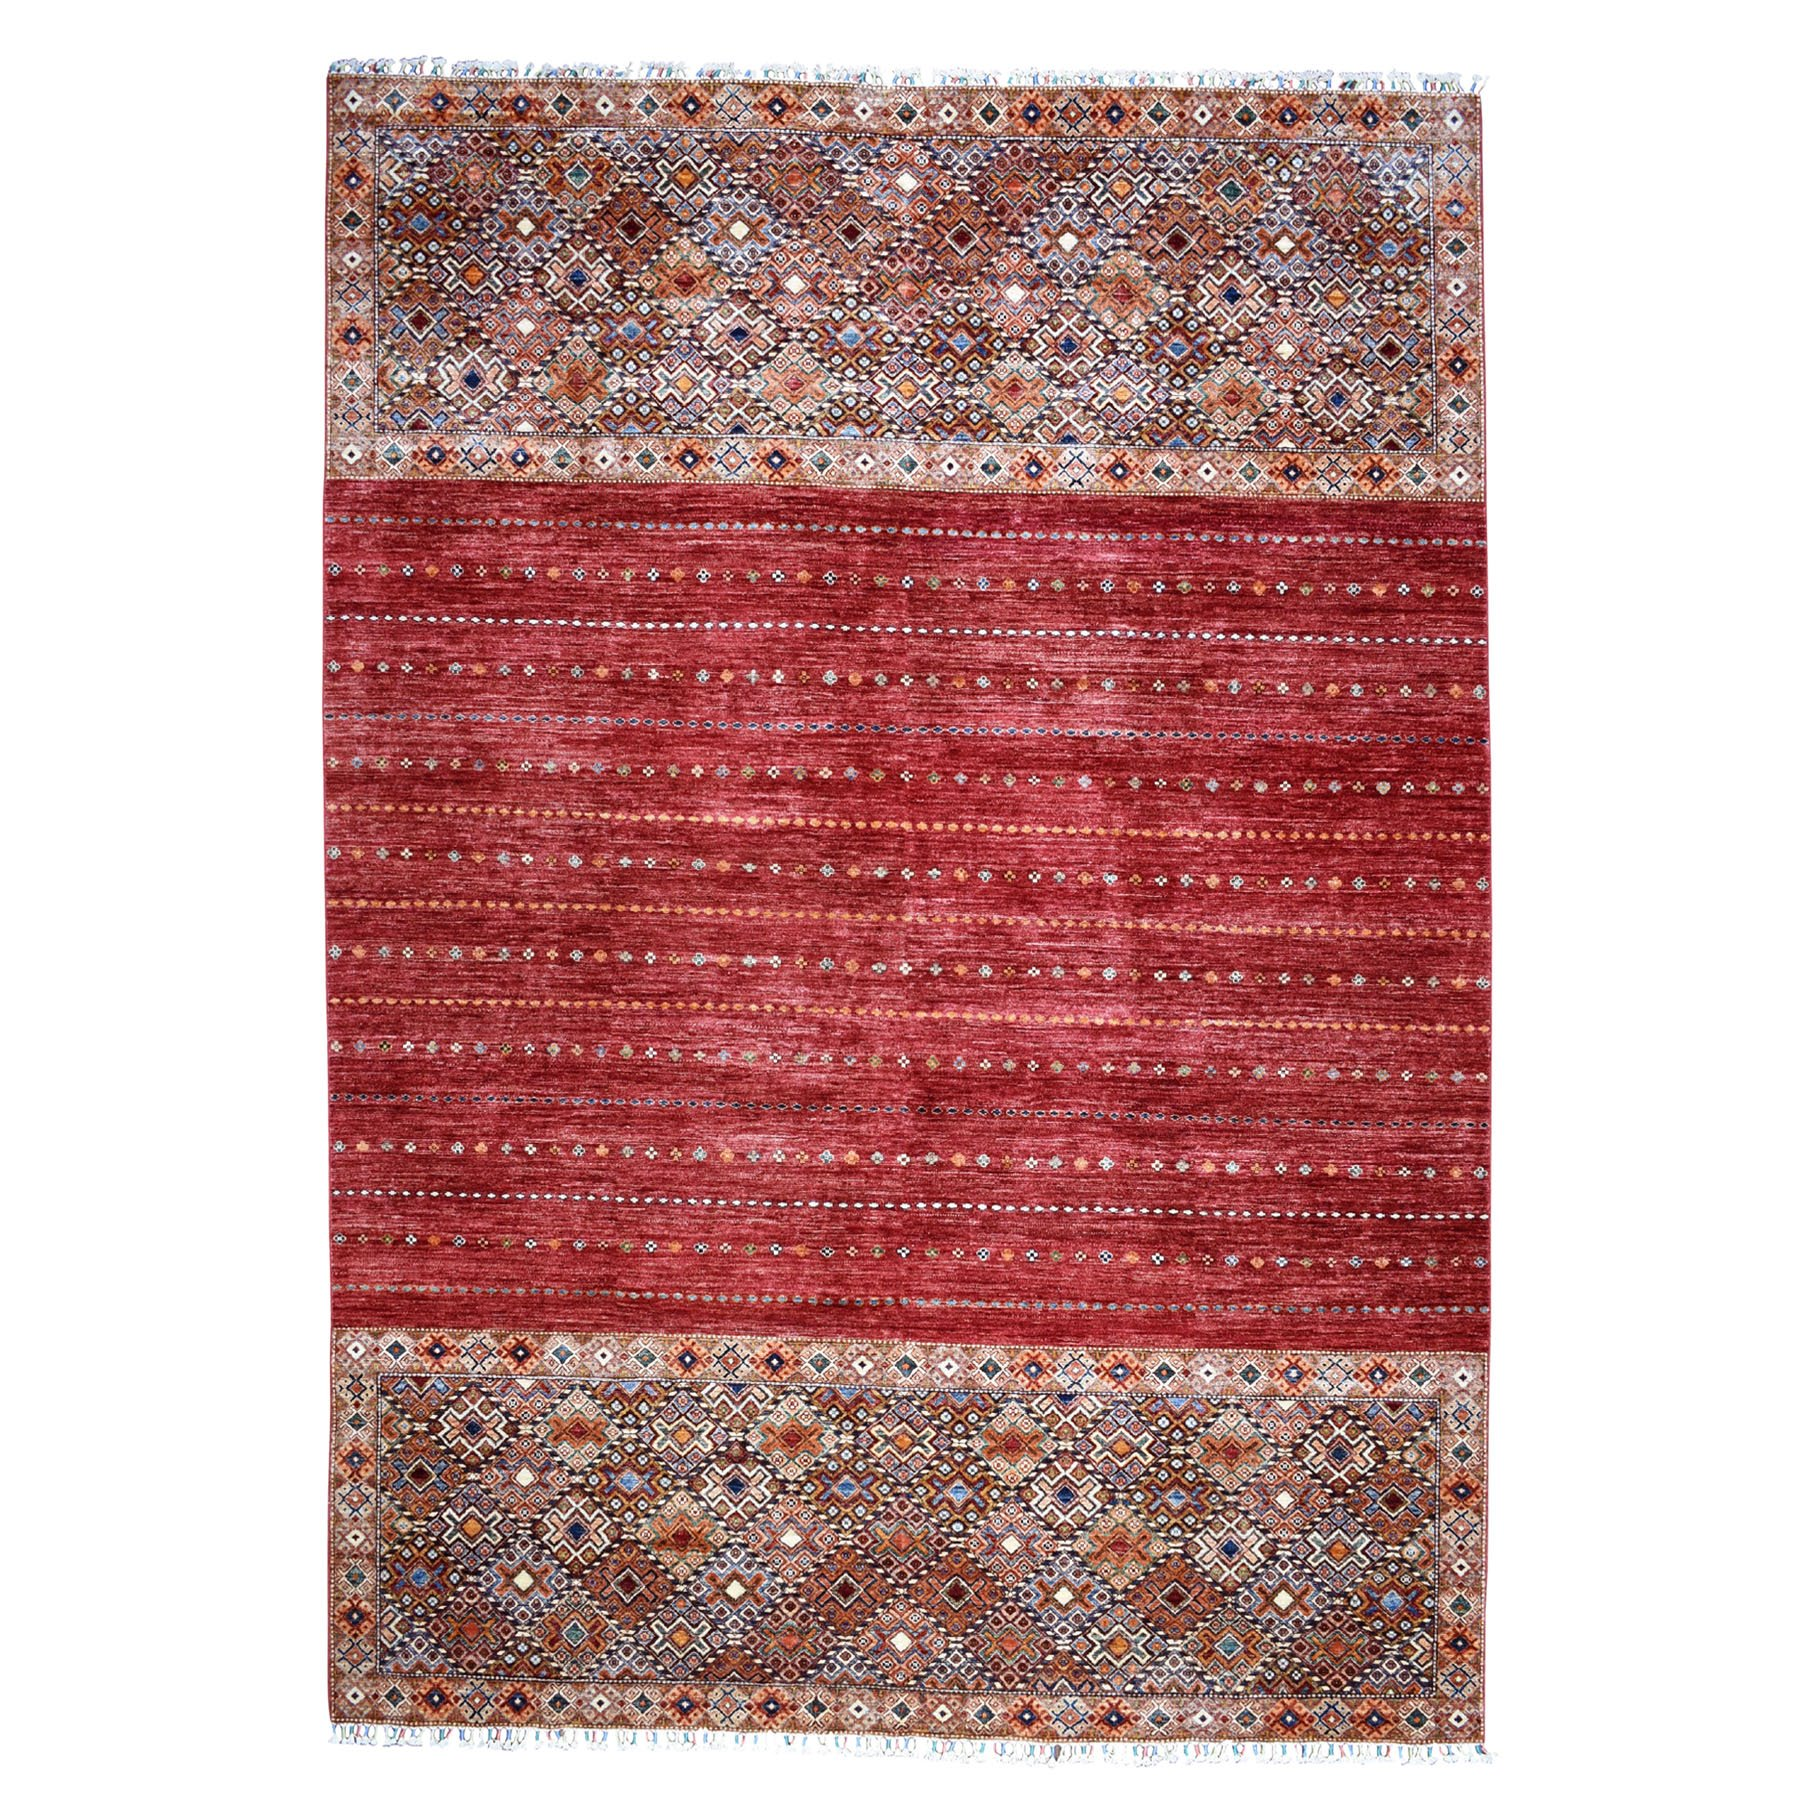 "9'x11'6"" Khorjin Design Red Super Kazak Pure Wool Hand Knotted Oriental Rug"